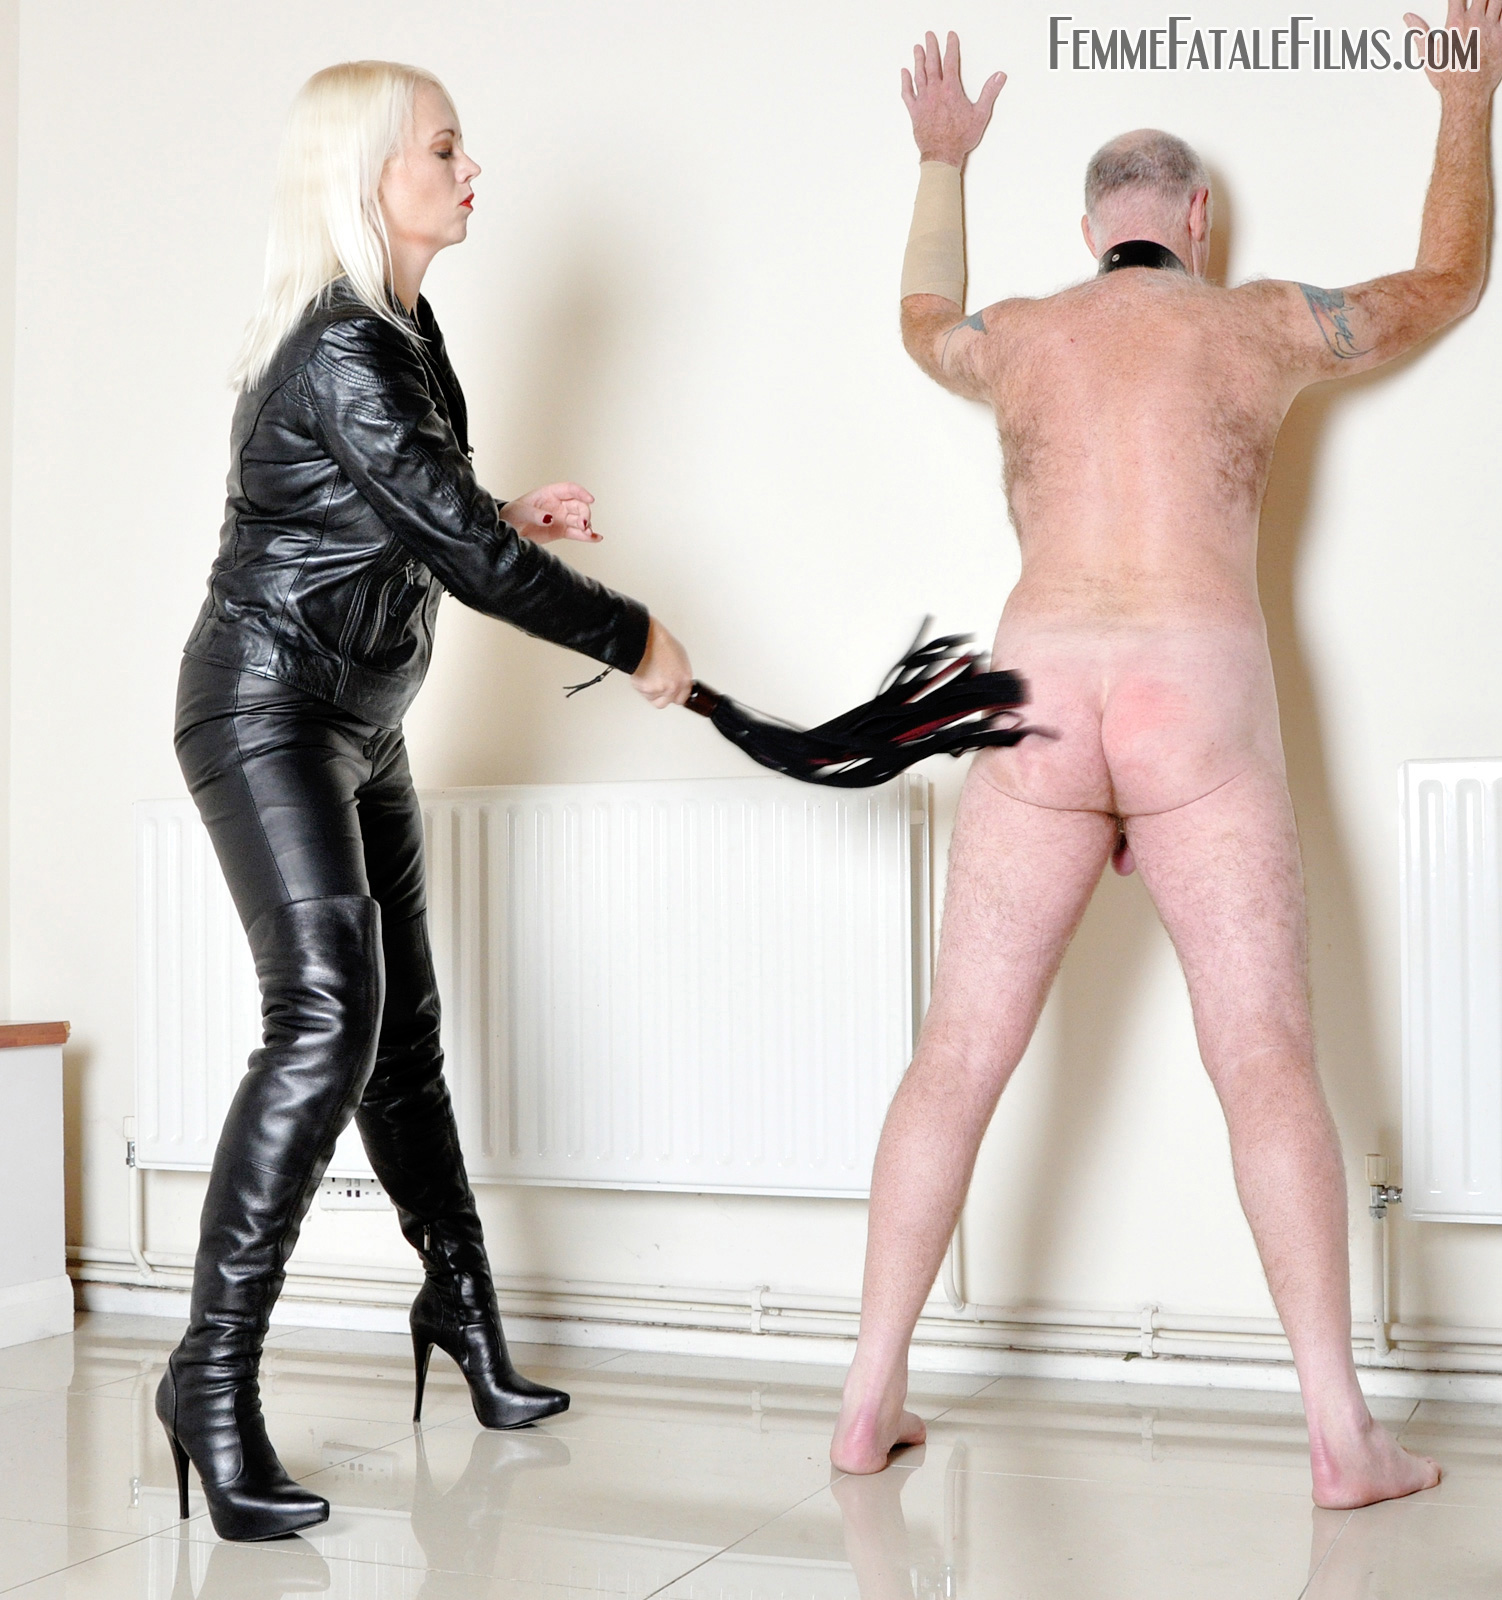 Leathered Up For Lashing with Divine Mistress Heather